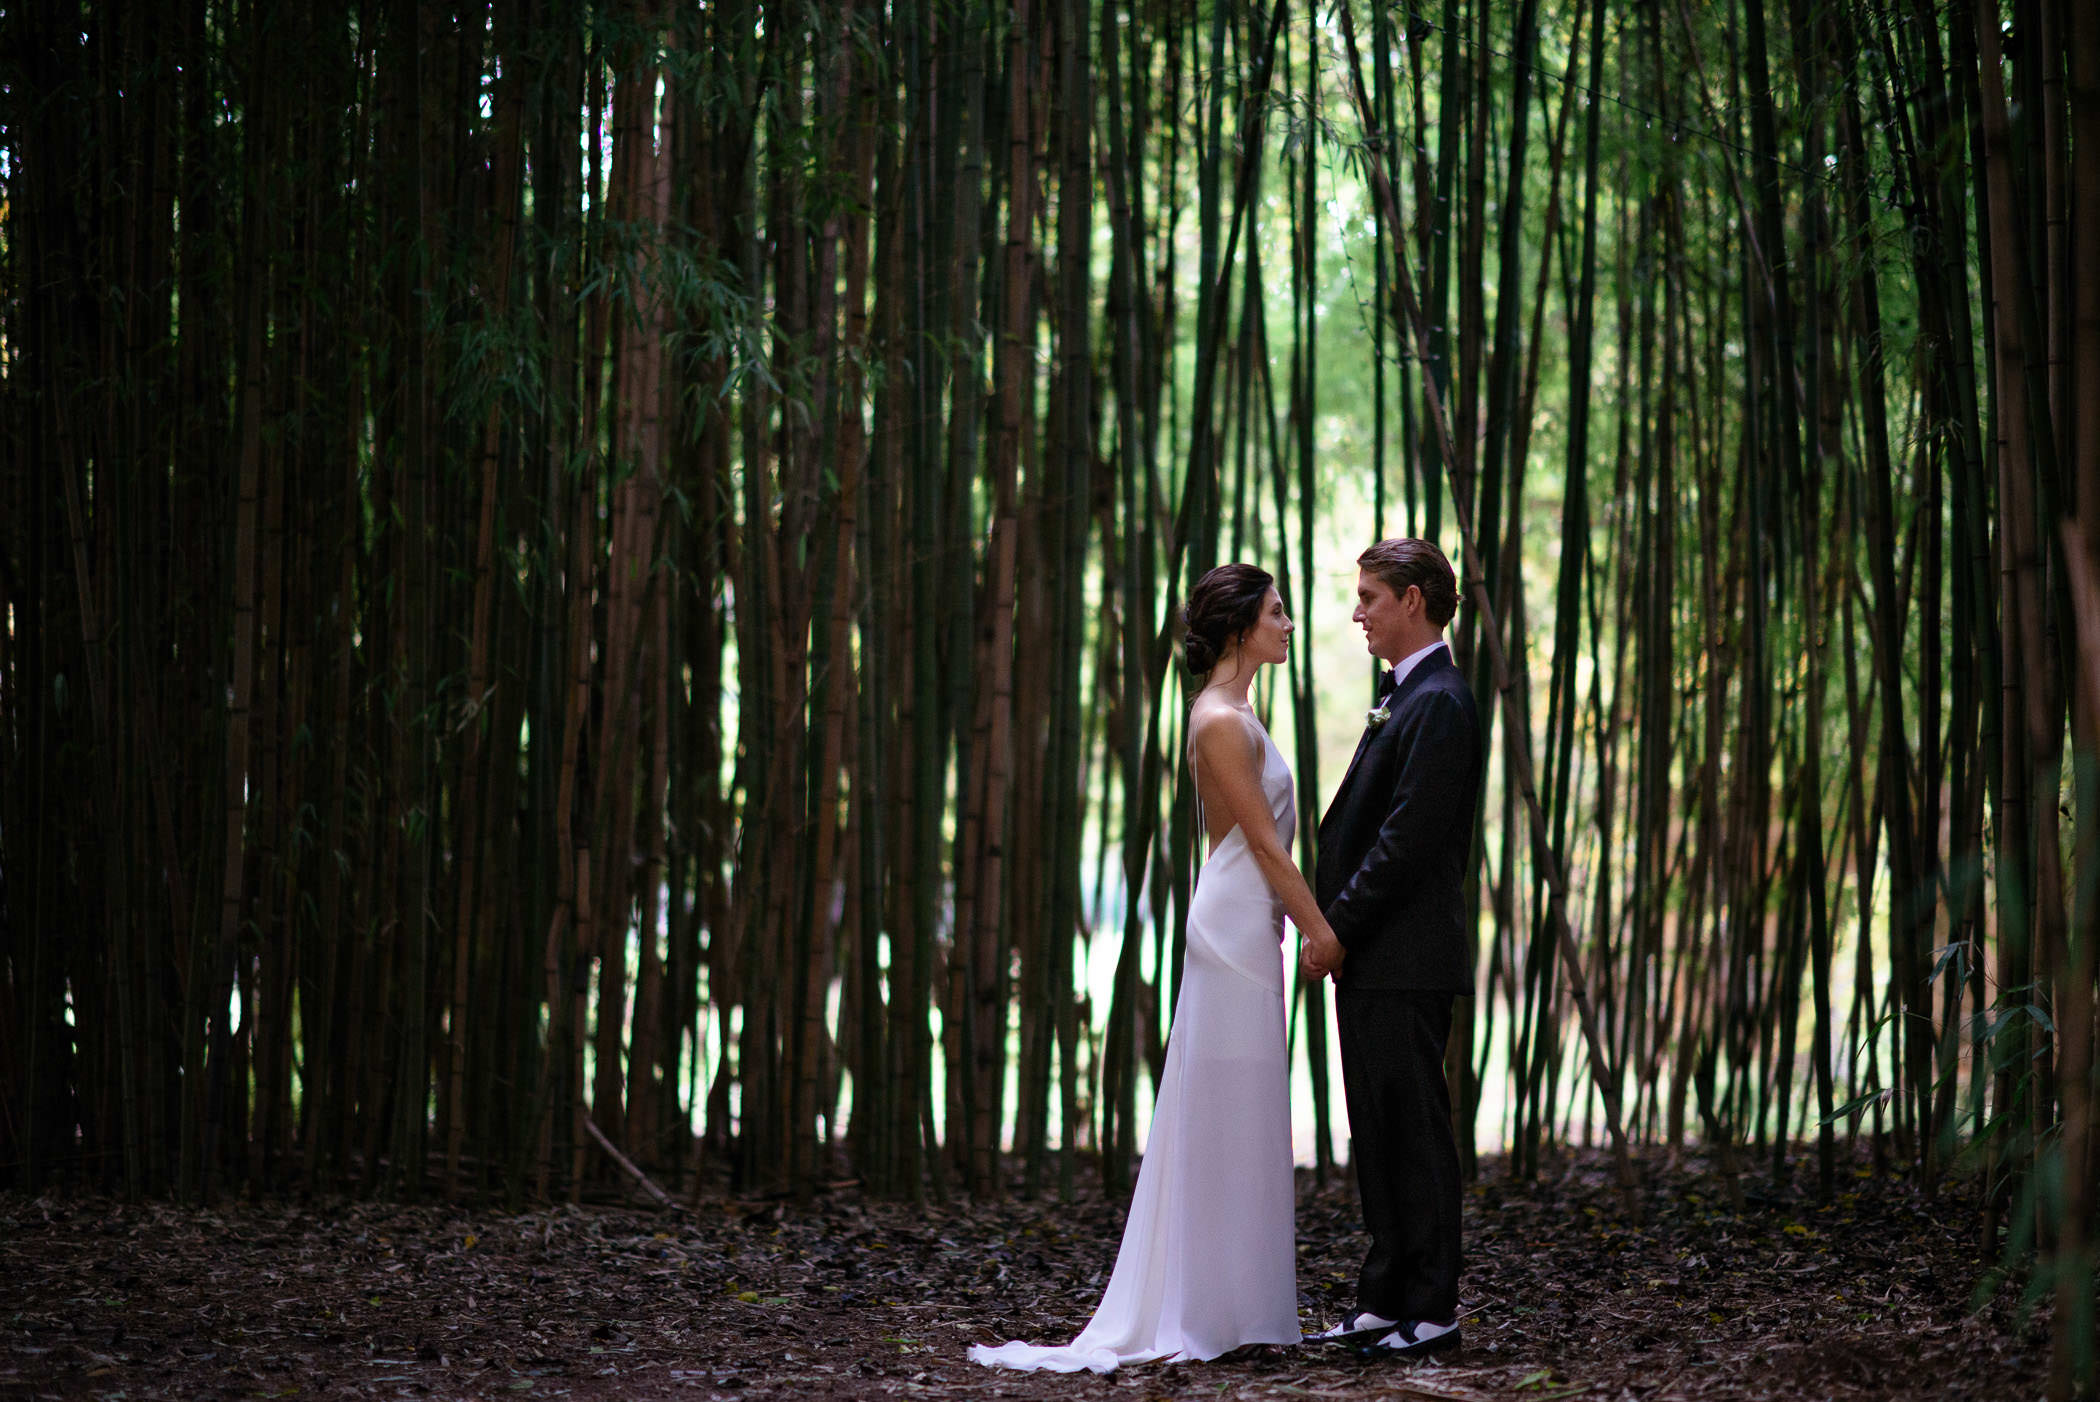 Autumn+Barnsley+Gardens+Wedding+Atlanta+Georgia_9.jpg